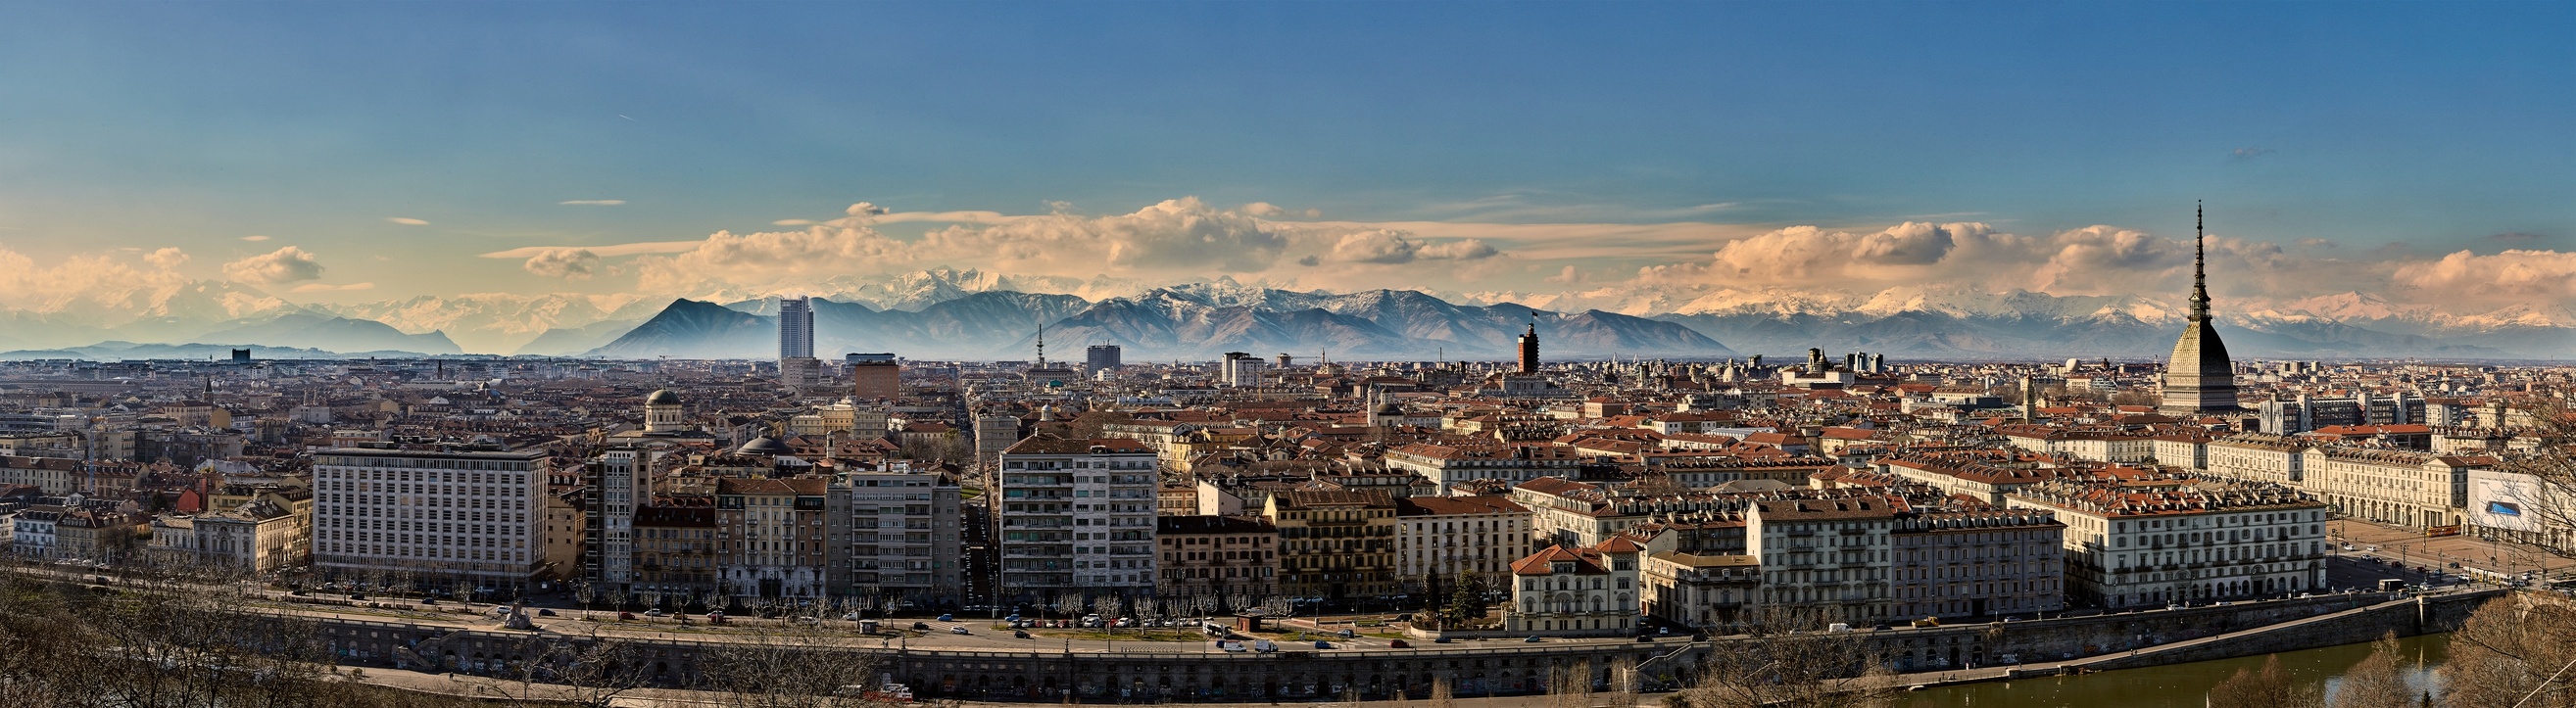 Turin One Of The Most Beautiful Cities In Italy For Your Wedding